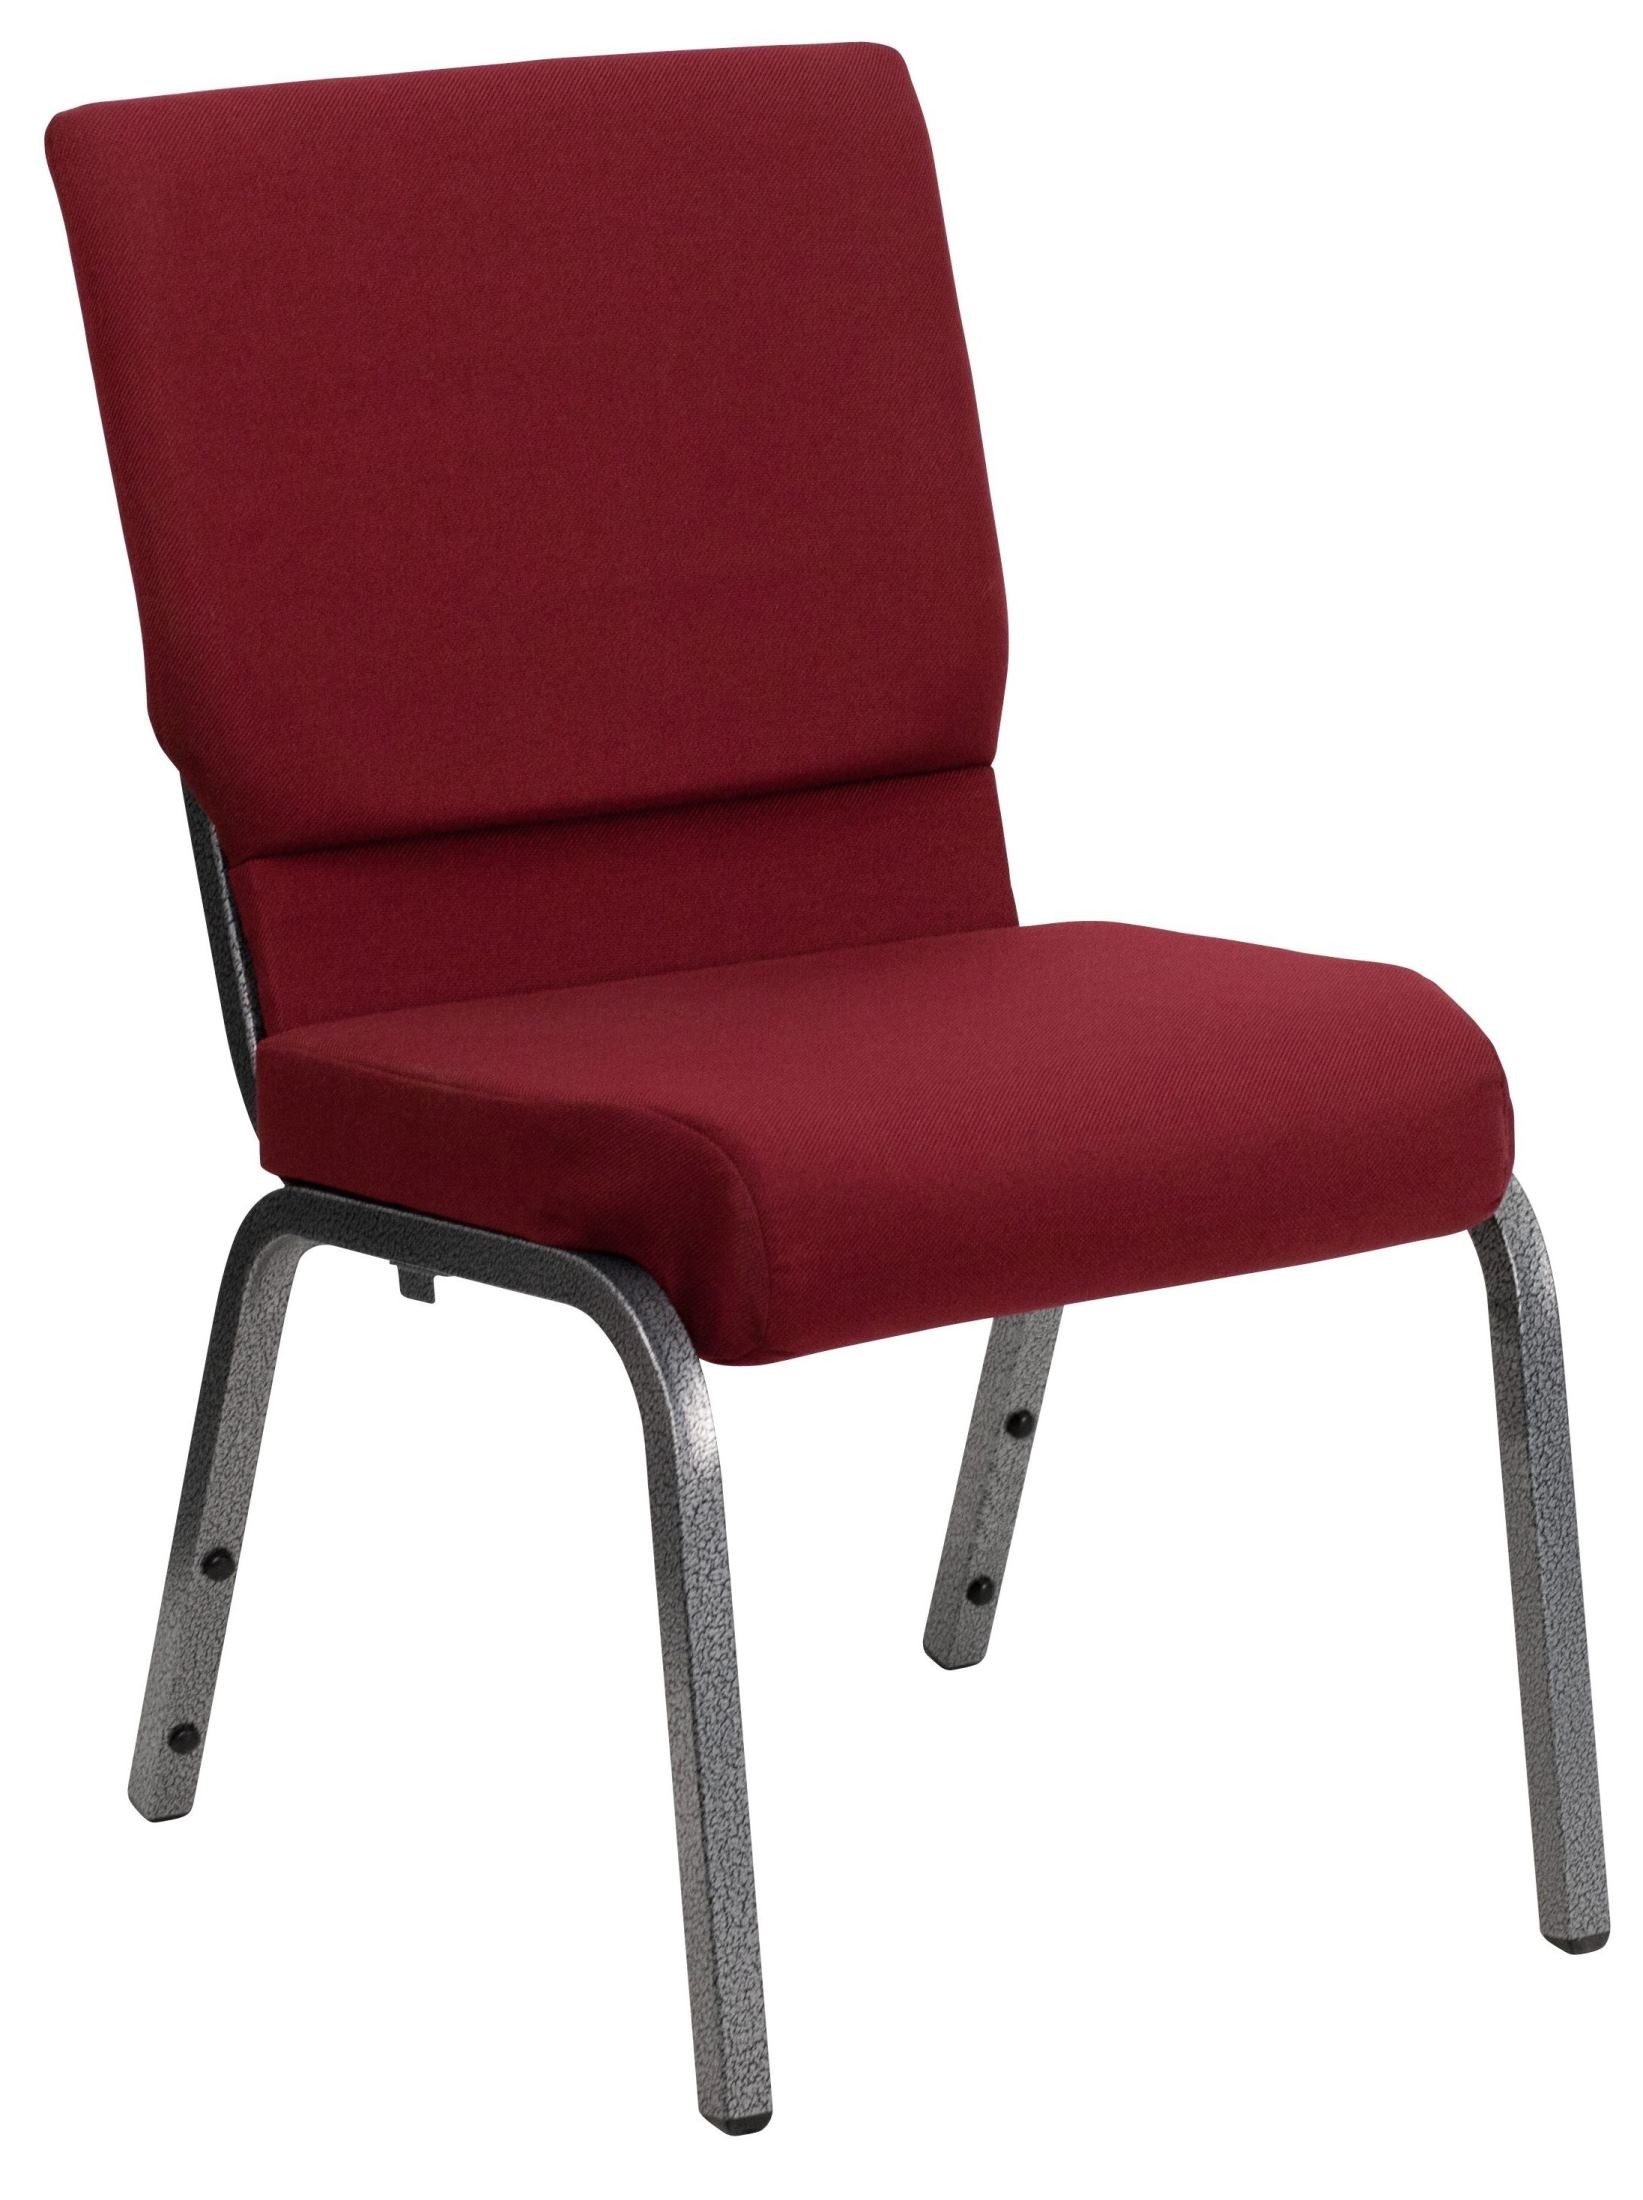 Hercules Stacking Chairs Hercules Series Burgundy Fabric Stacking Church Chair From